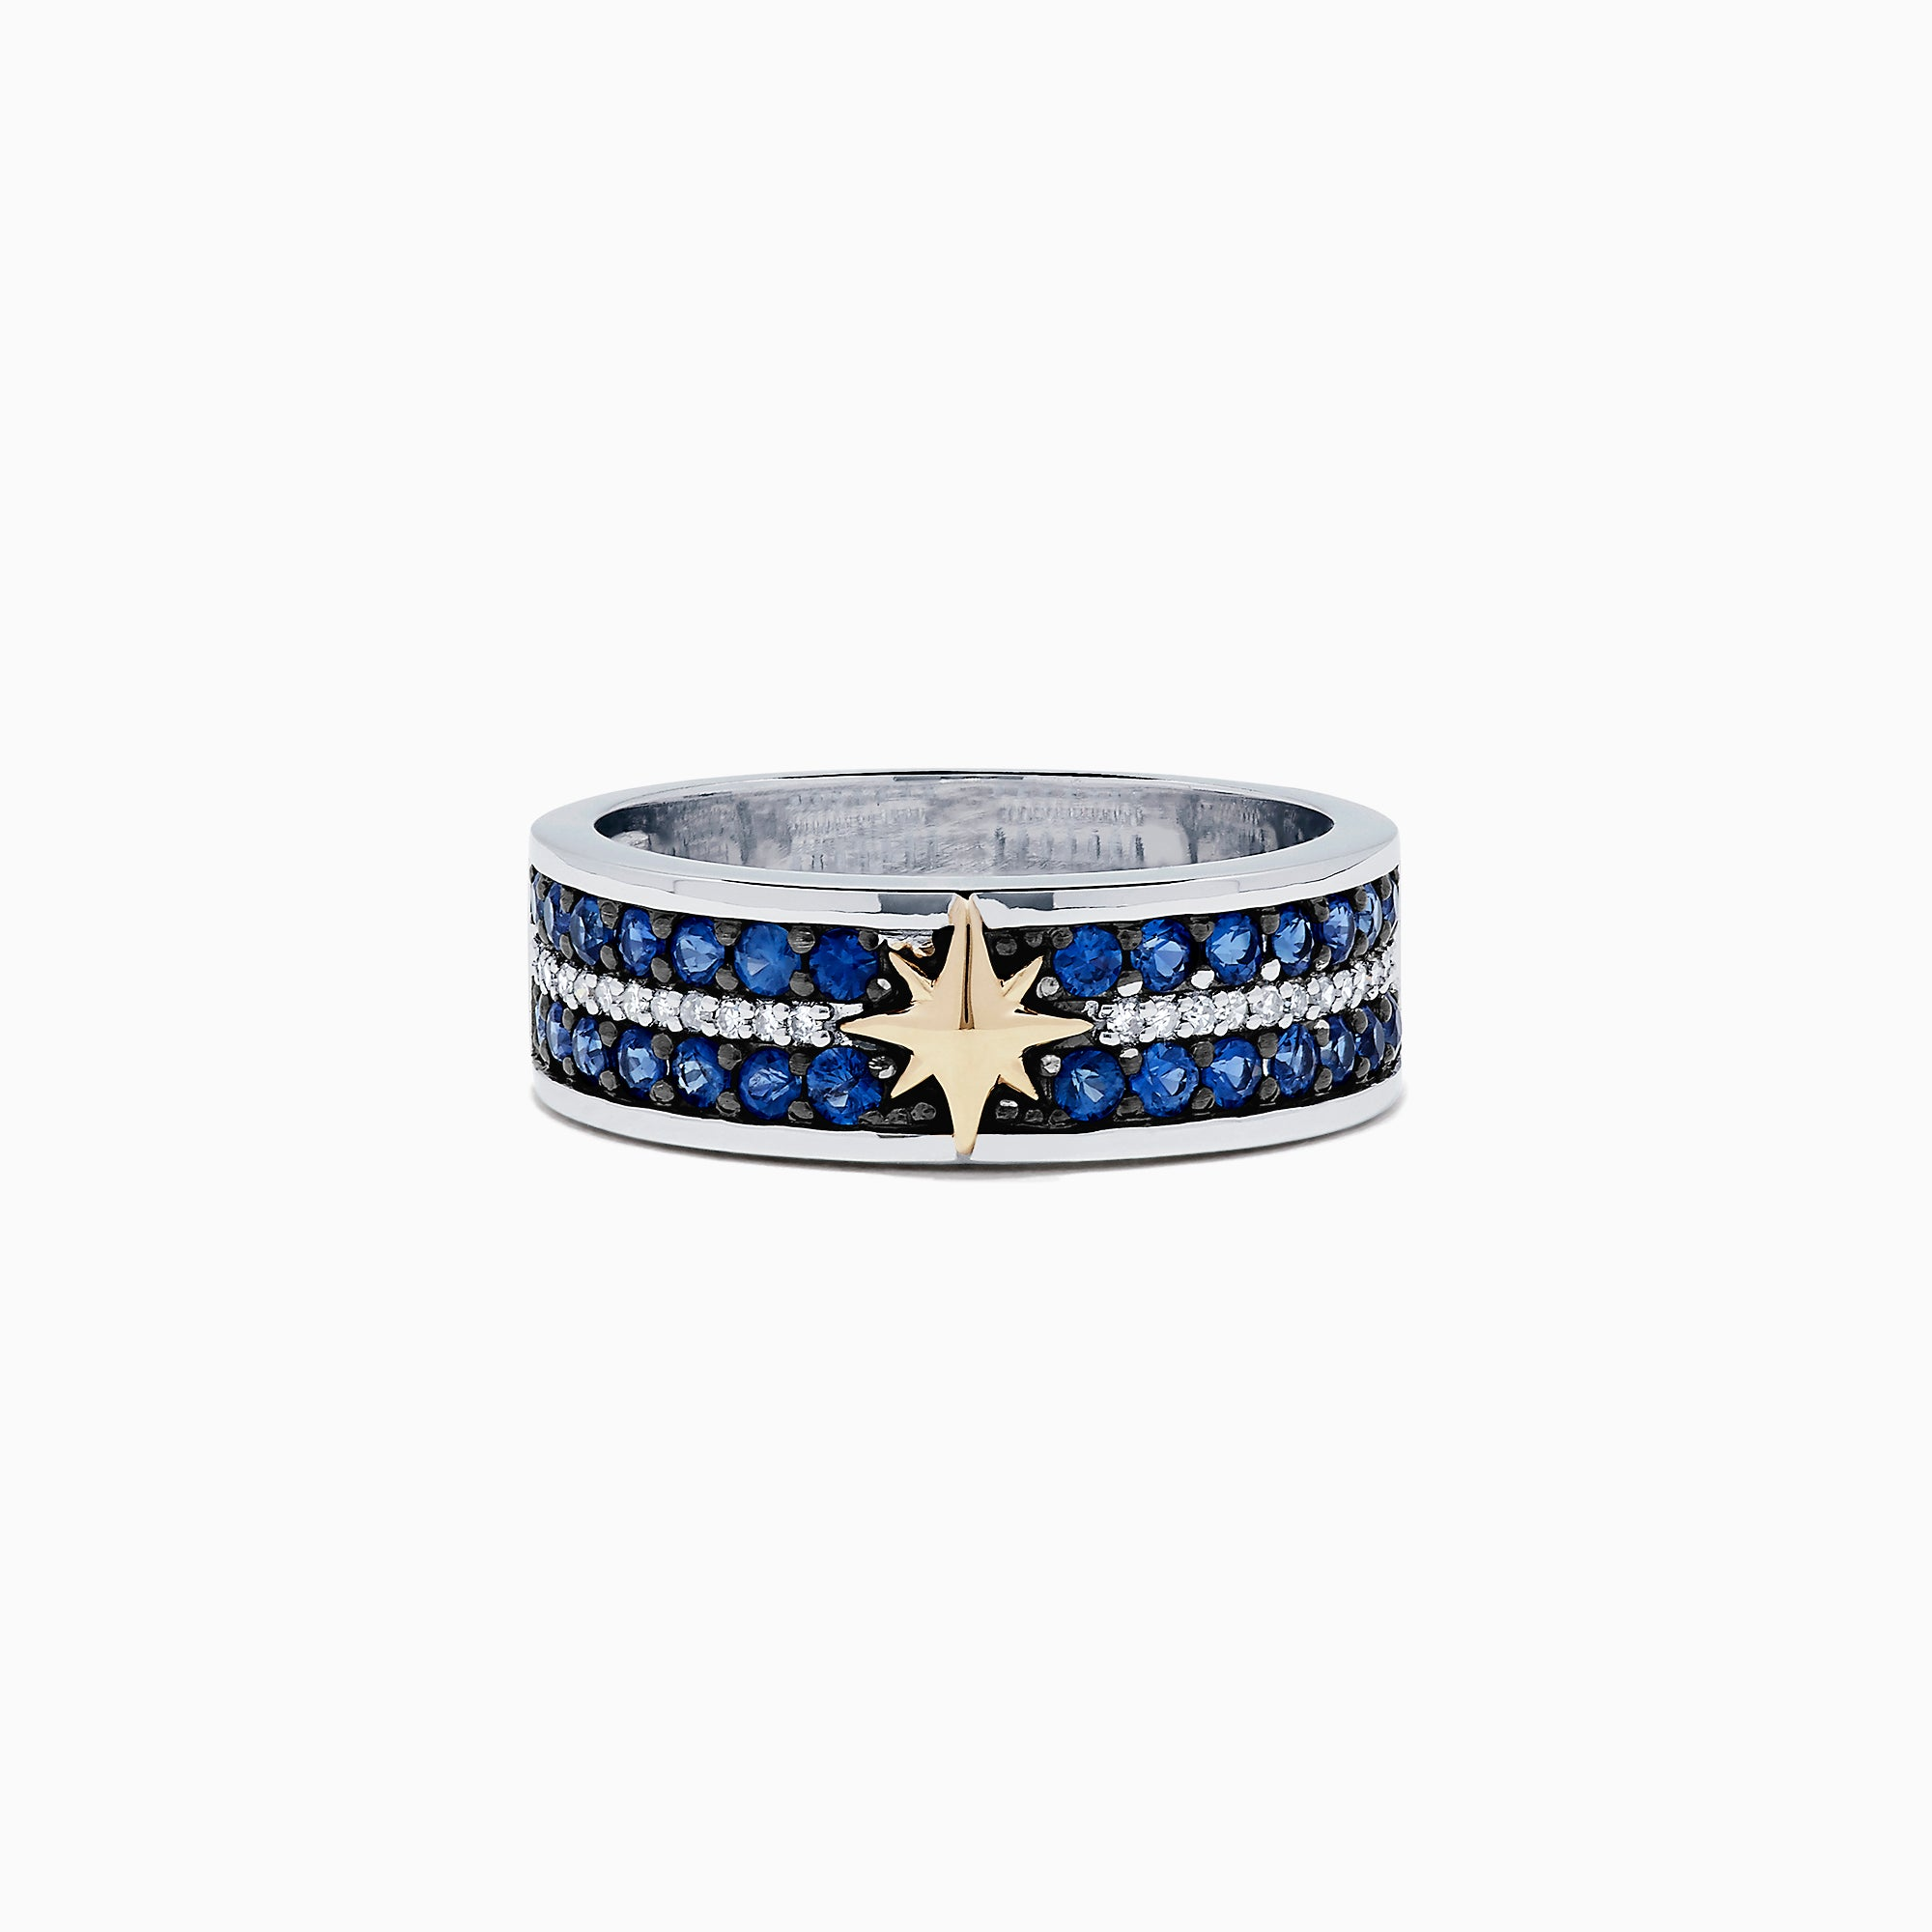 Effy Men's 14K Two Tone Gold Sapphire and Diamond Star Ring, 1.18 TCW